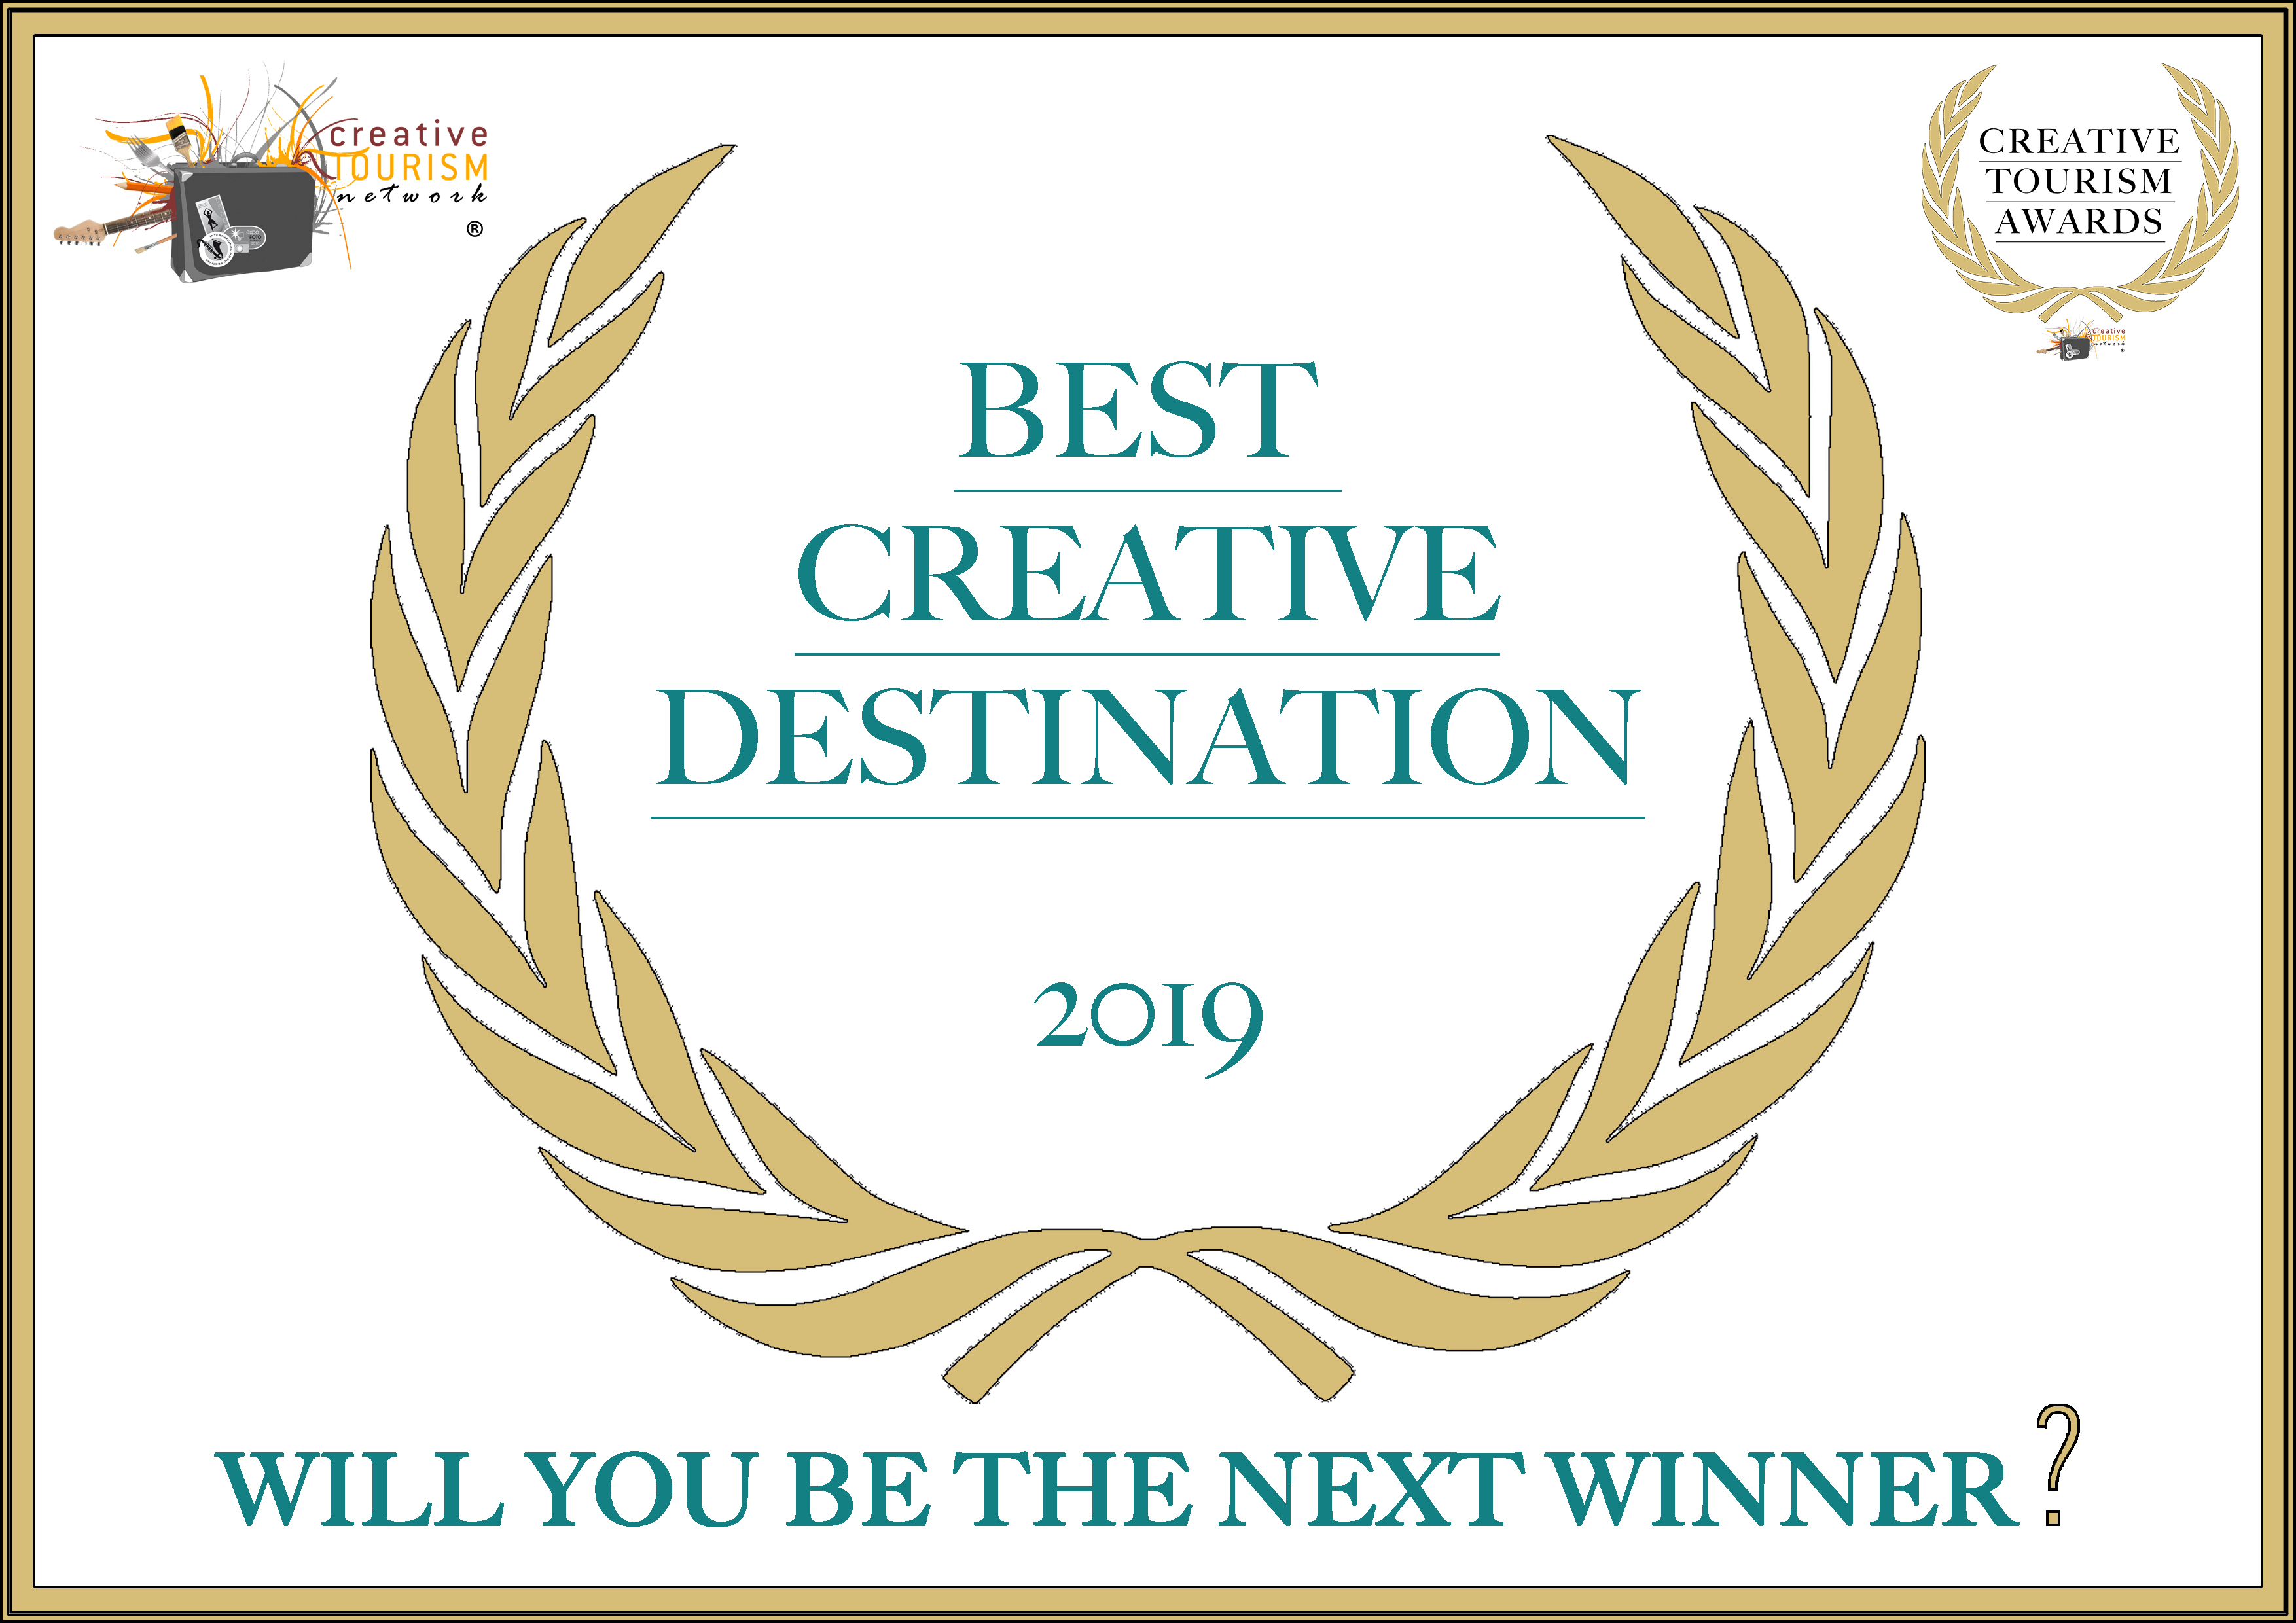 BestCreativeDestination2019_